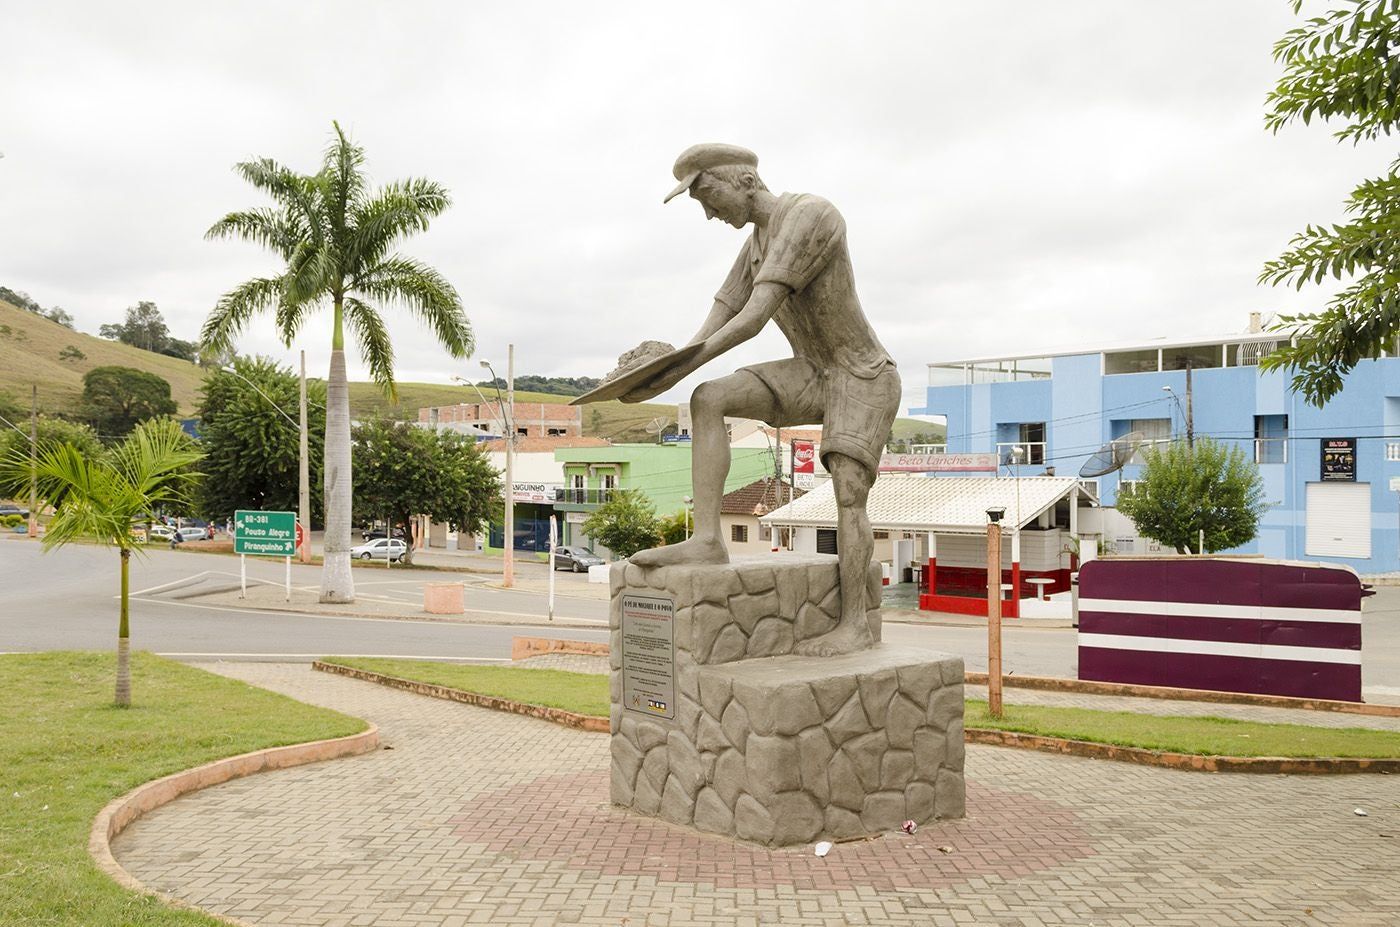 Plaza en Piranguinho